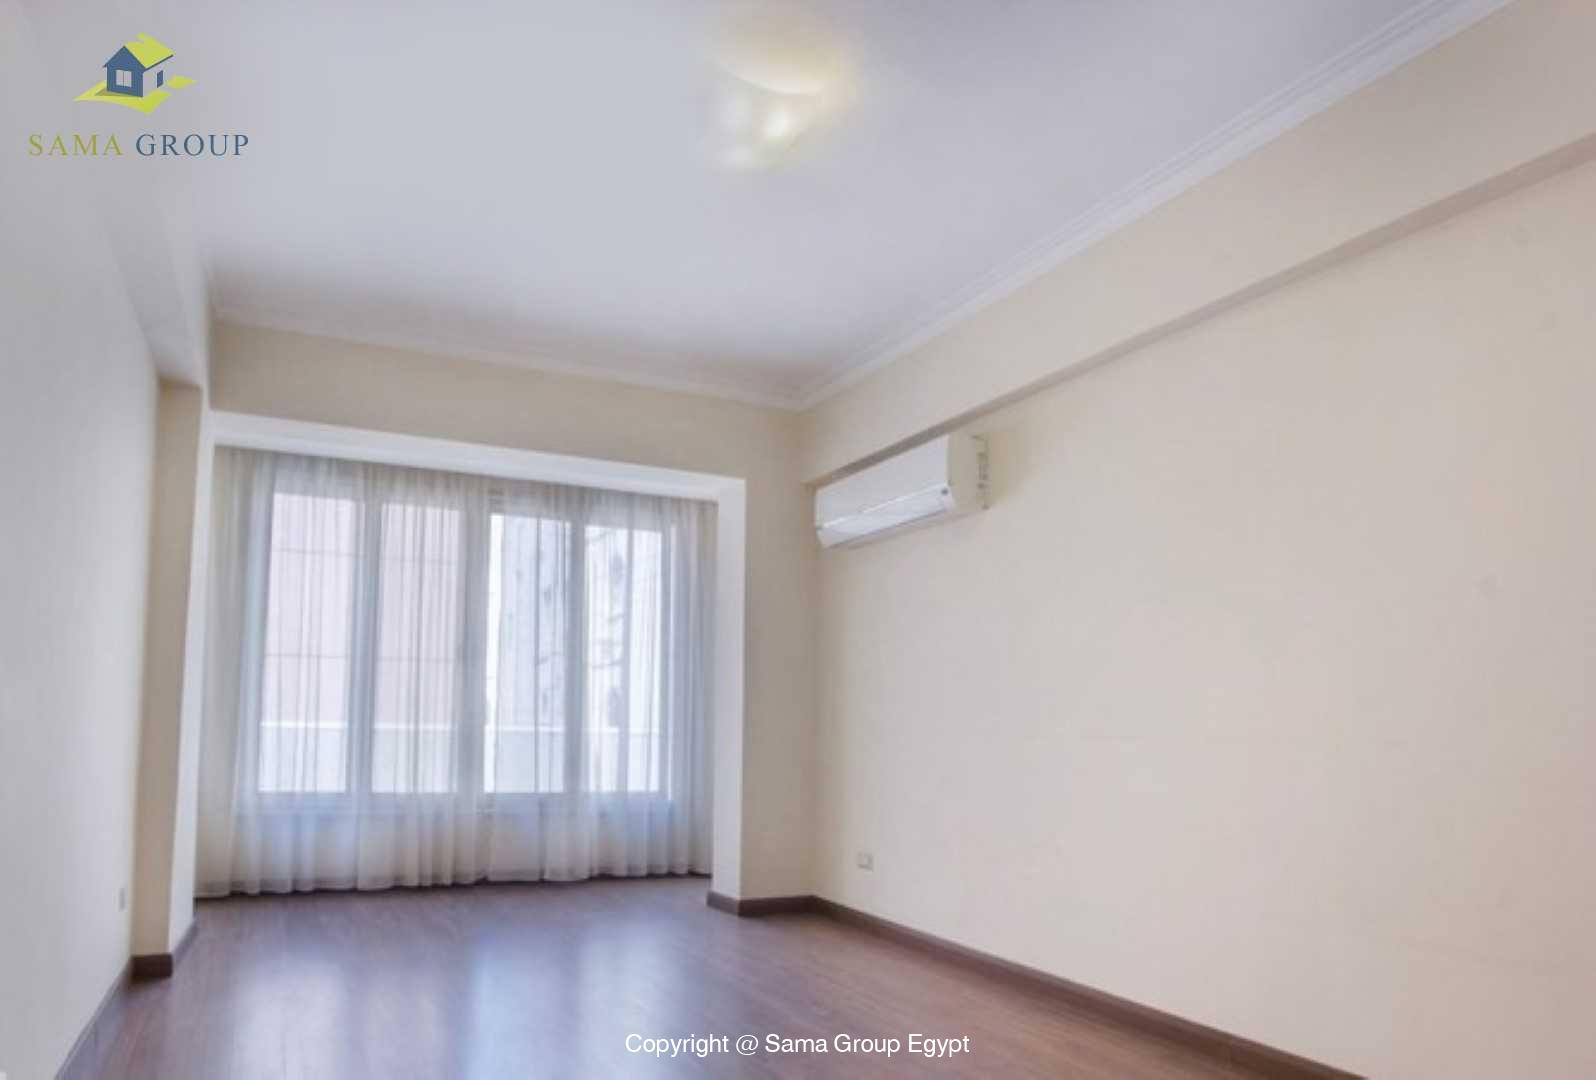 Apartment Duplex For Rent In New Cairo,Modern Furnished,Duplex NO #5